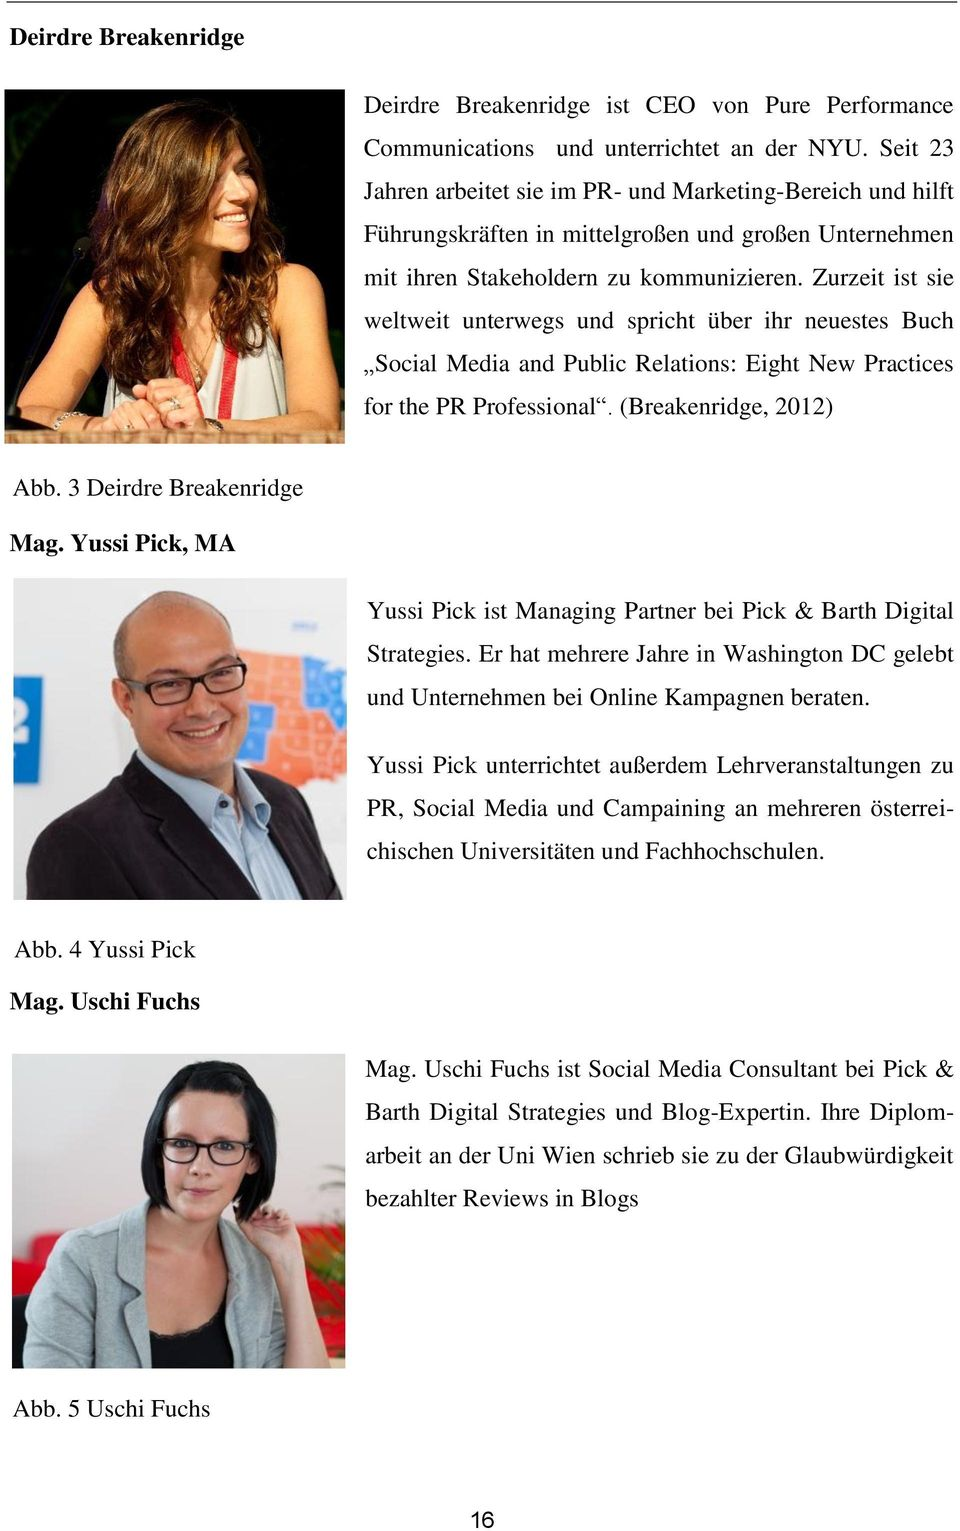 Zurzeit ist sie weltweit unterwegs und spricht über ihr neuestes Buch Social Media and Public Relations: Eight New Practices for the PR Professional. (Breakenridge, 2012) Abb.